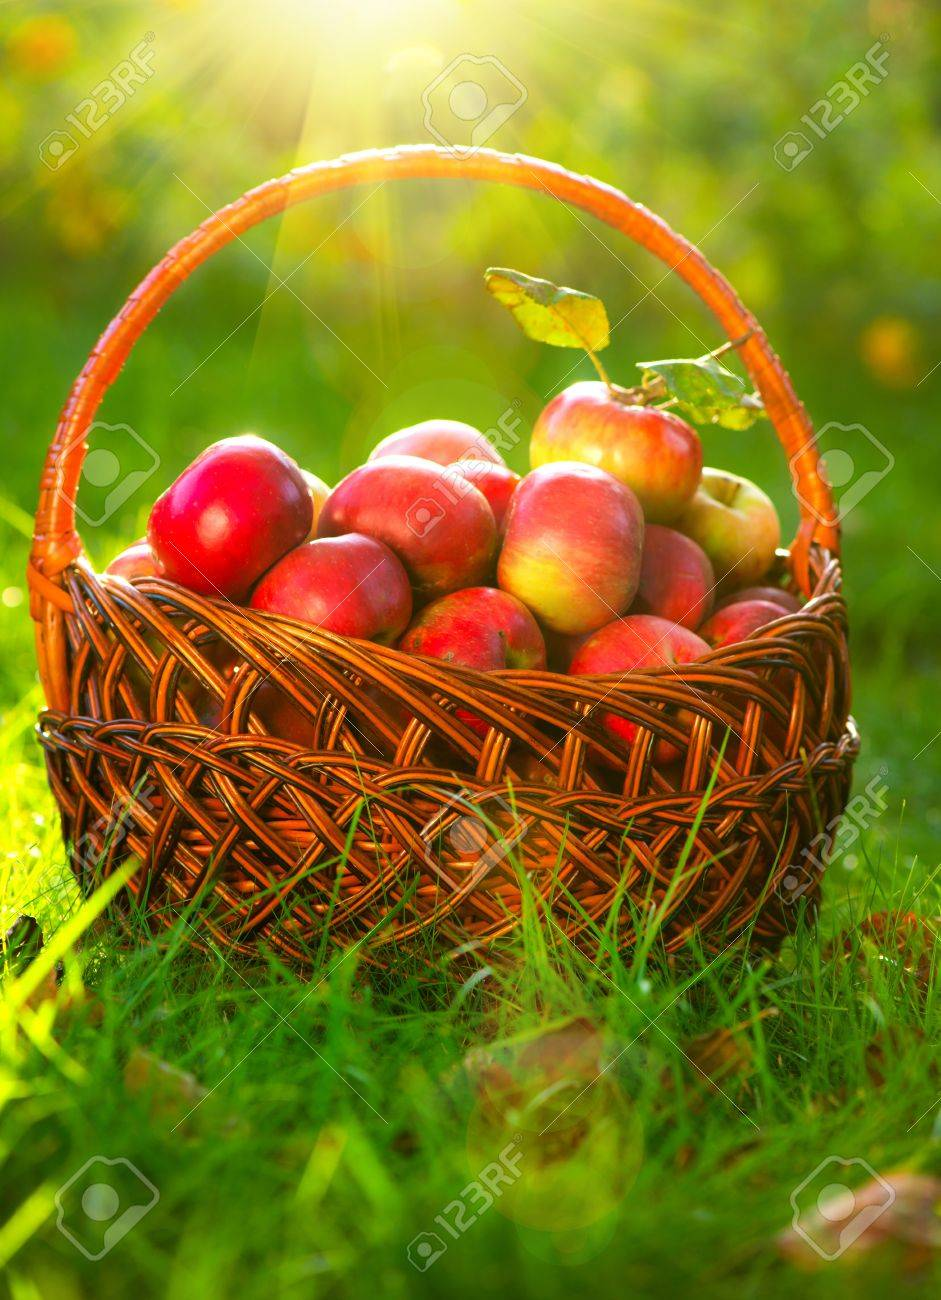 Organic Apples in the Basket  Orchard  Garden Stock Photo - 15660980